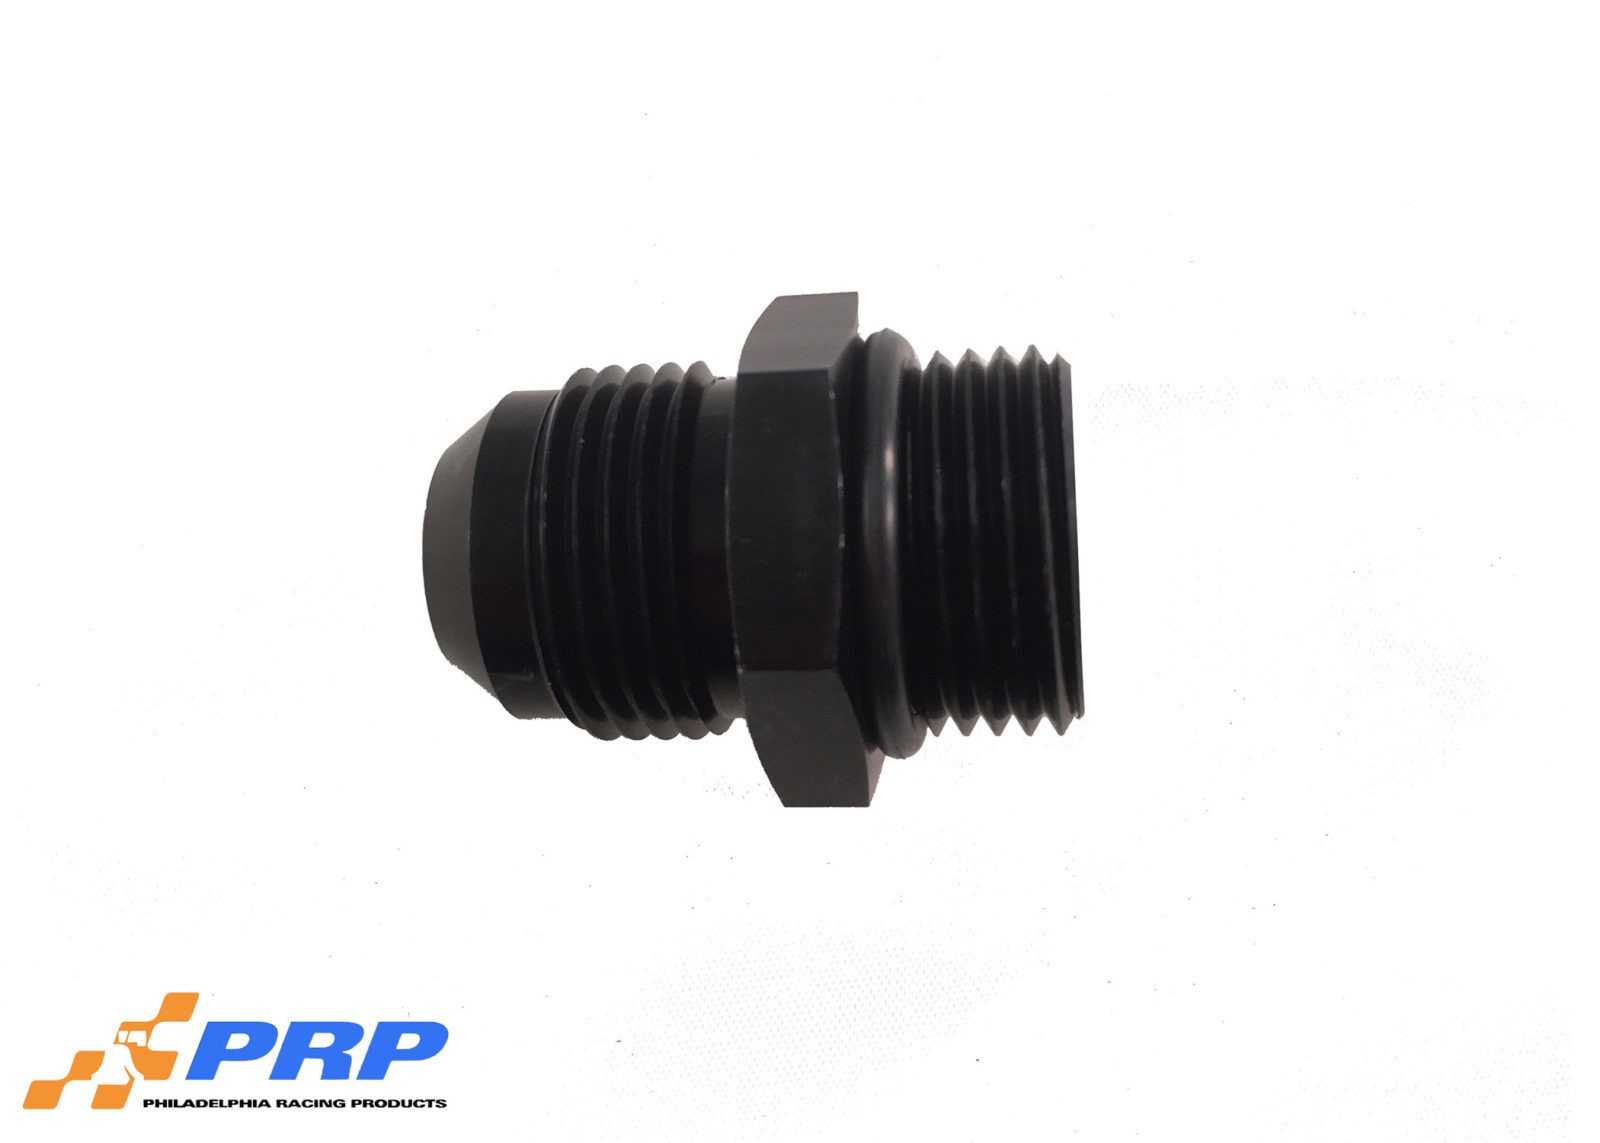 Black O-Ring Style Port Adapter Fittings 12AN Port fitting to 12AN Hose made by PRP Racing Products